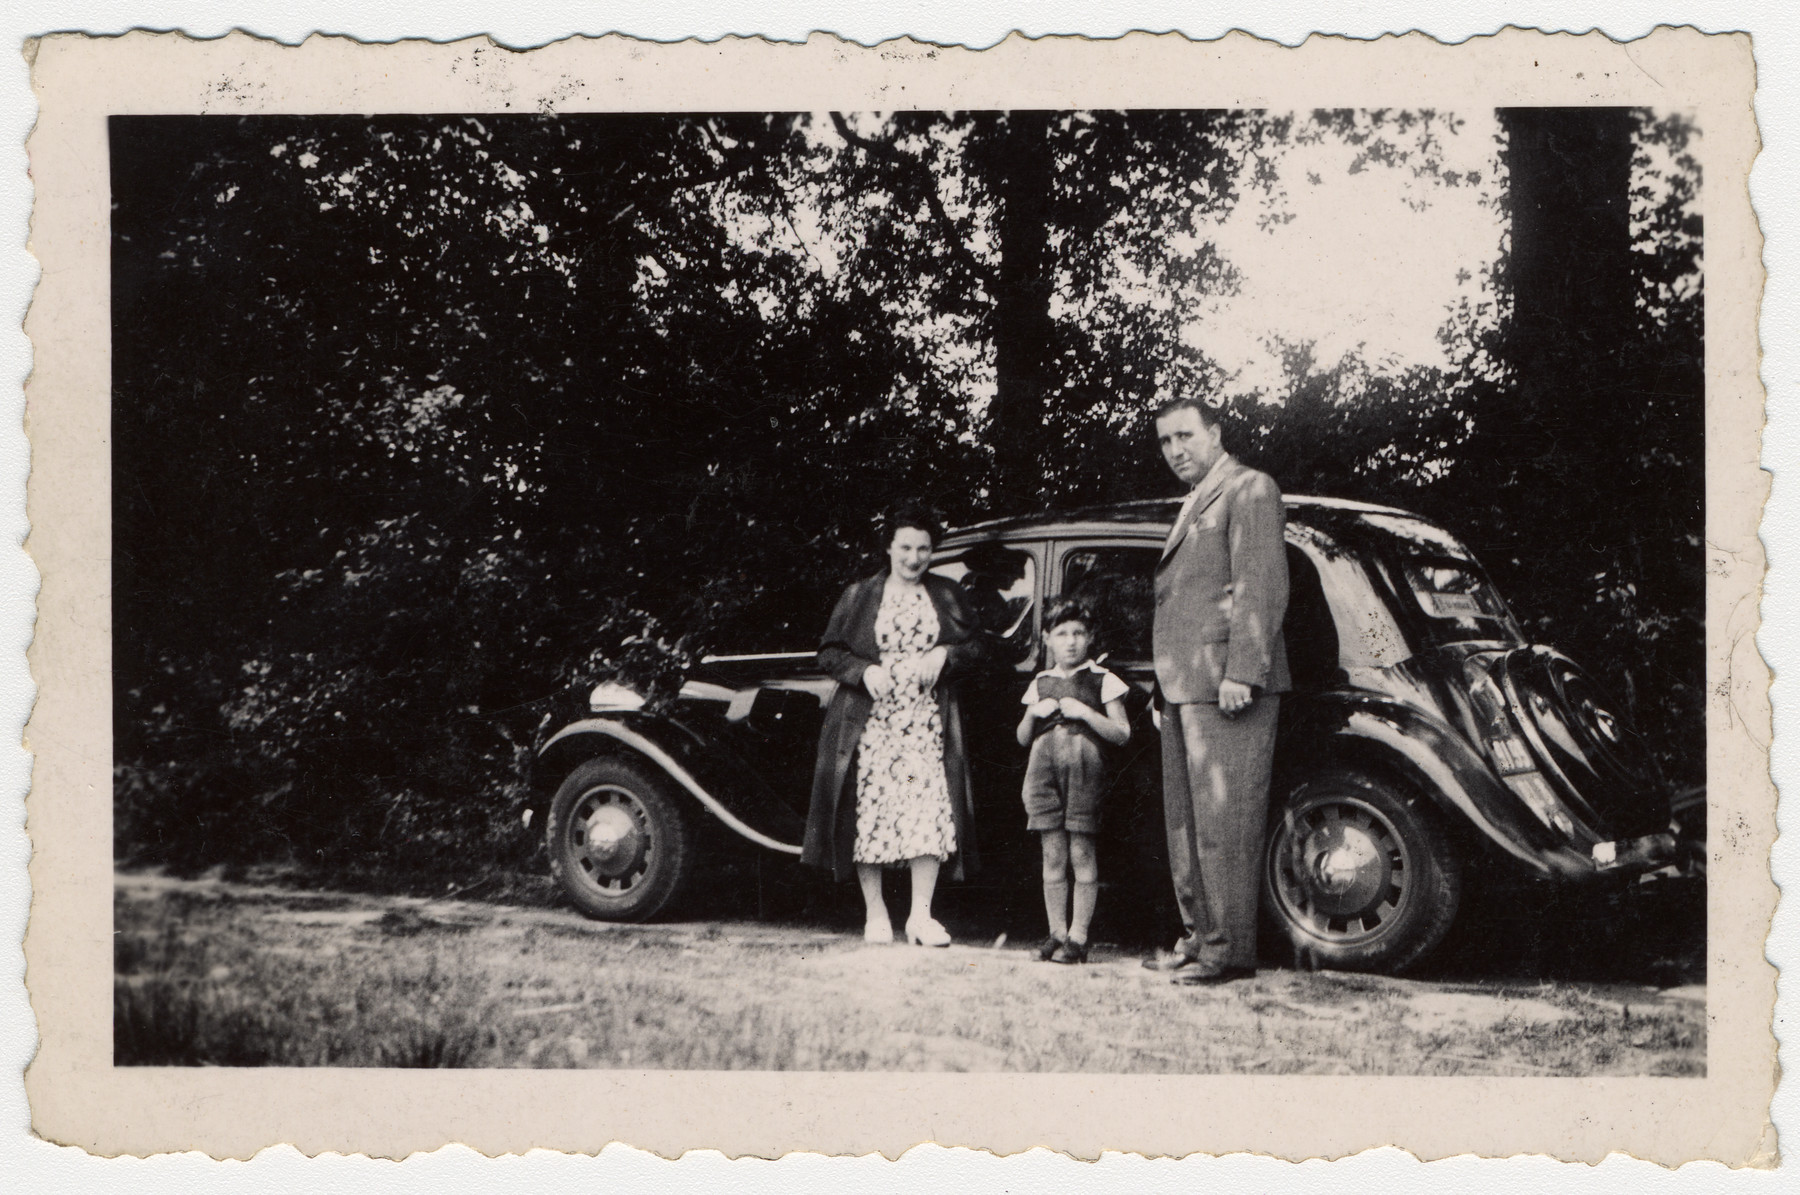 Steven Simon in middle with his parents, Irma Rachel Simon and Arthur Simon, next to their family car on vacation in 1939 prior to WW II.  The French army requisitioned the automobile as soon as the war broke out.